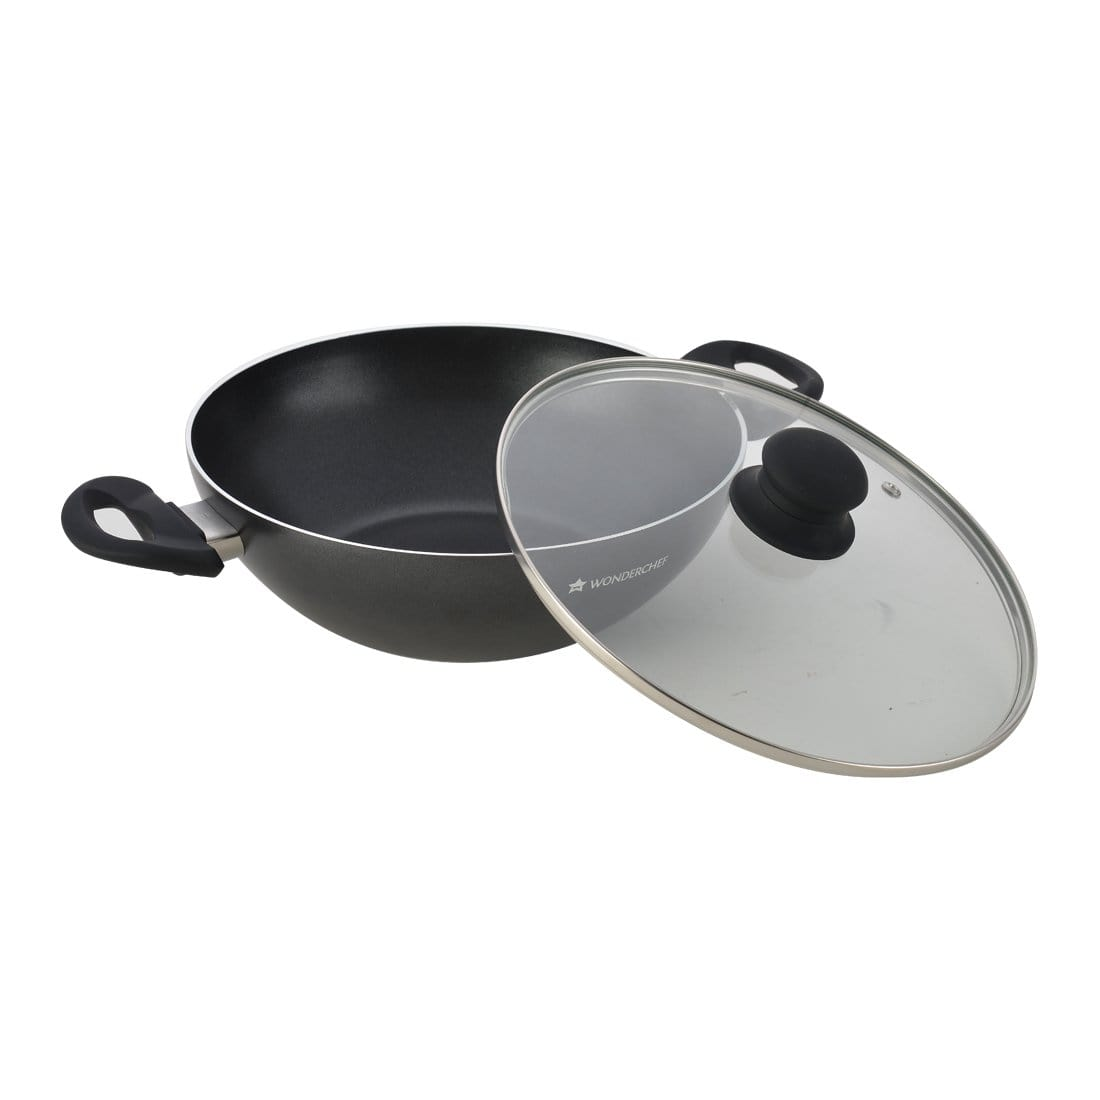 Premia Aluminium Nonstick Wok with Lid- 24cm, 2.5L, 3mm, Black